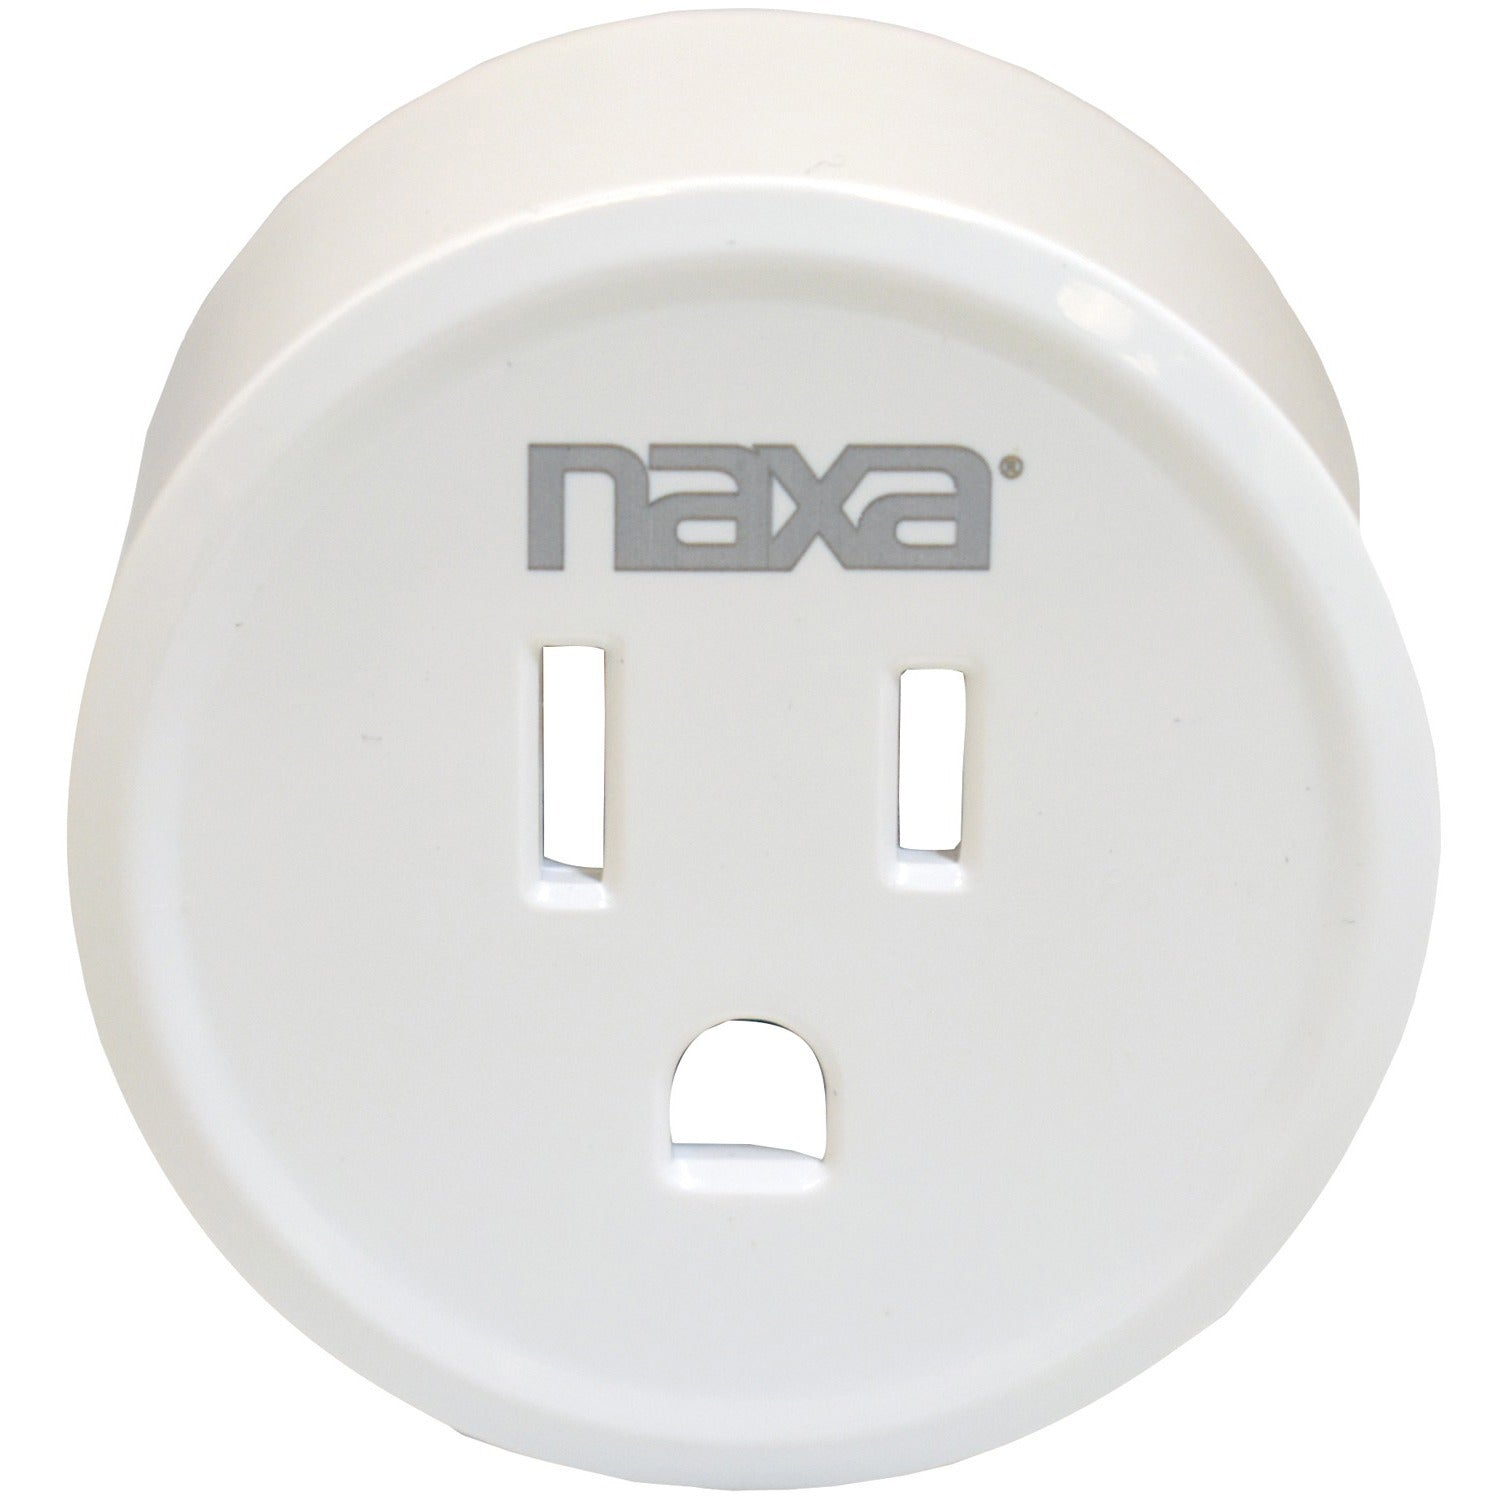 Wi Fi Smart Plug AC Power - 10 A - Google Assistant, Alexa, Google Home, IFTTT, Smart Life Supported